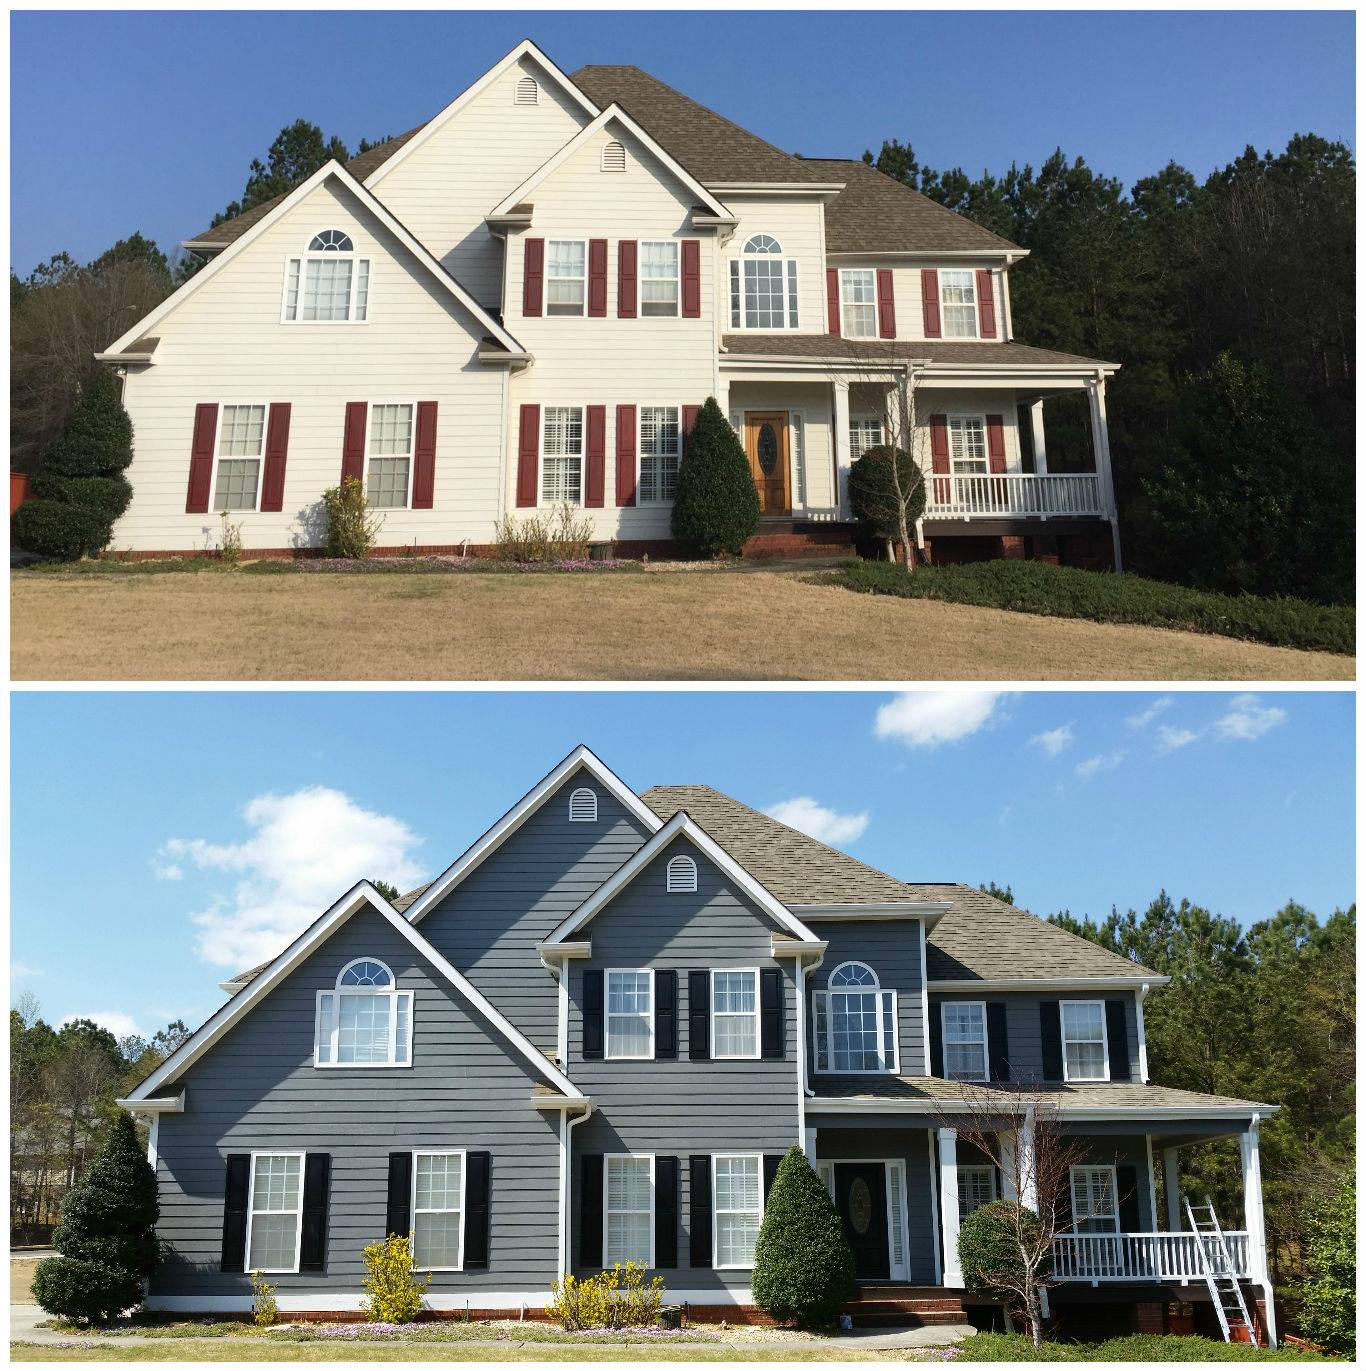 Before & After Exterior Residential Painting